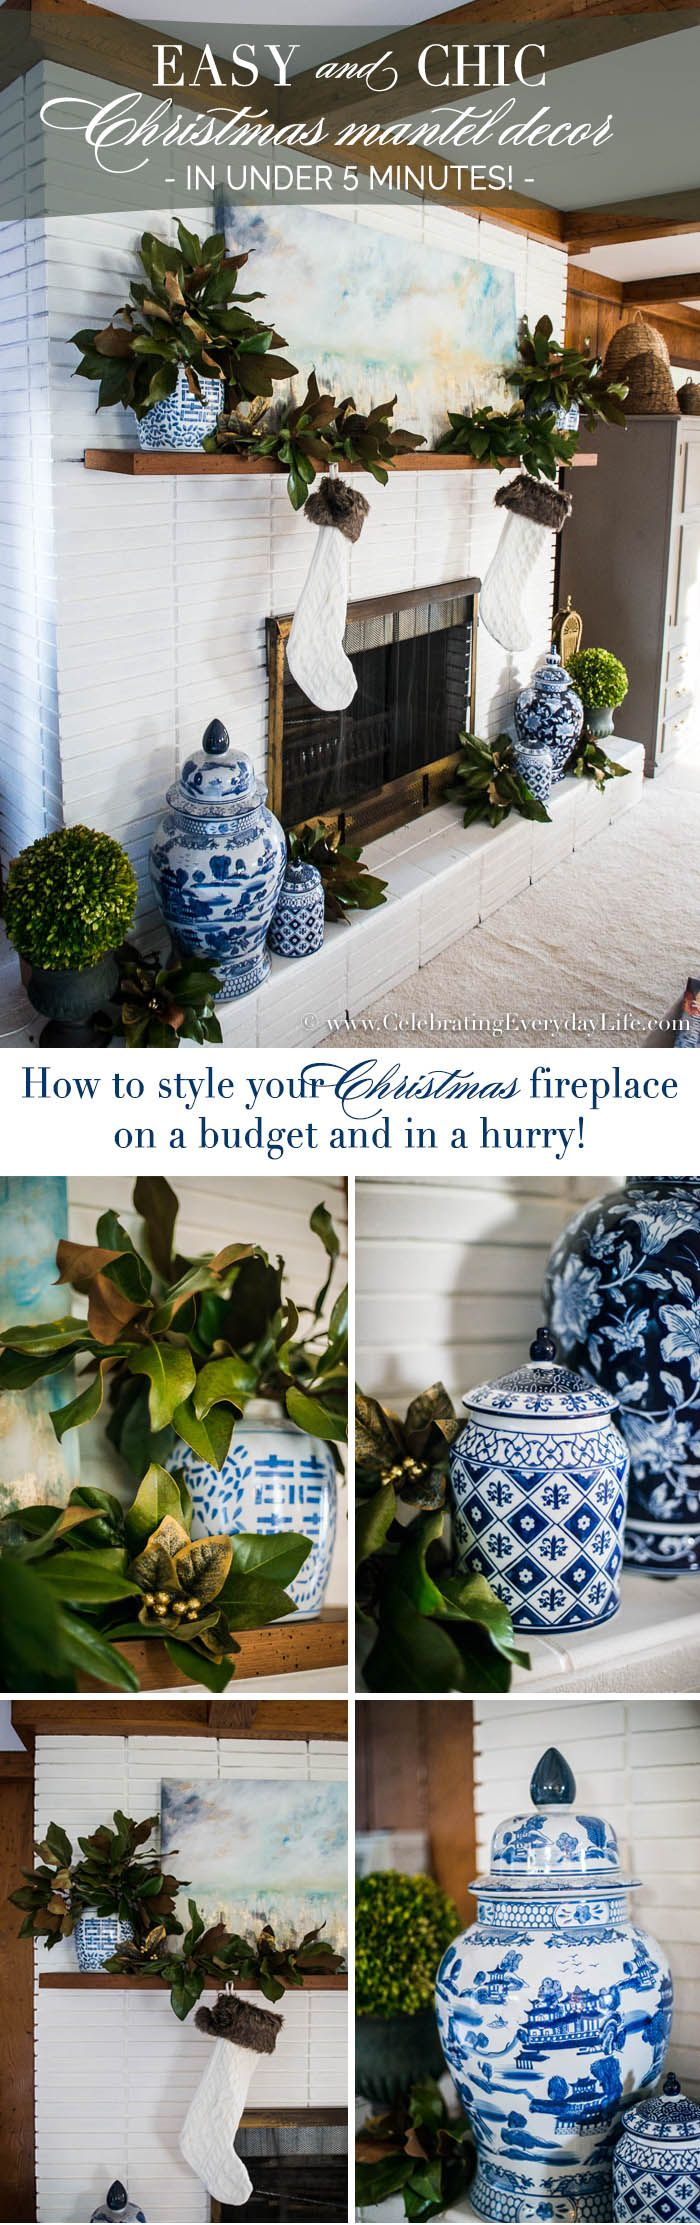 5 minute easy christmas mantel decor - Decor For Mantels